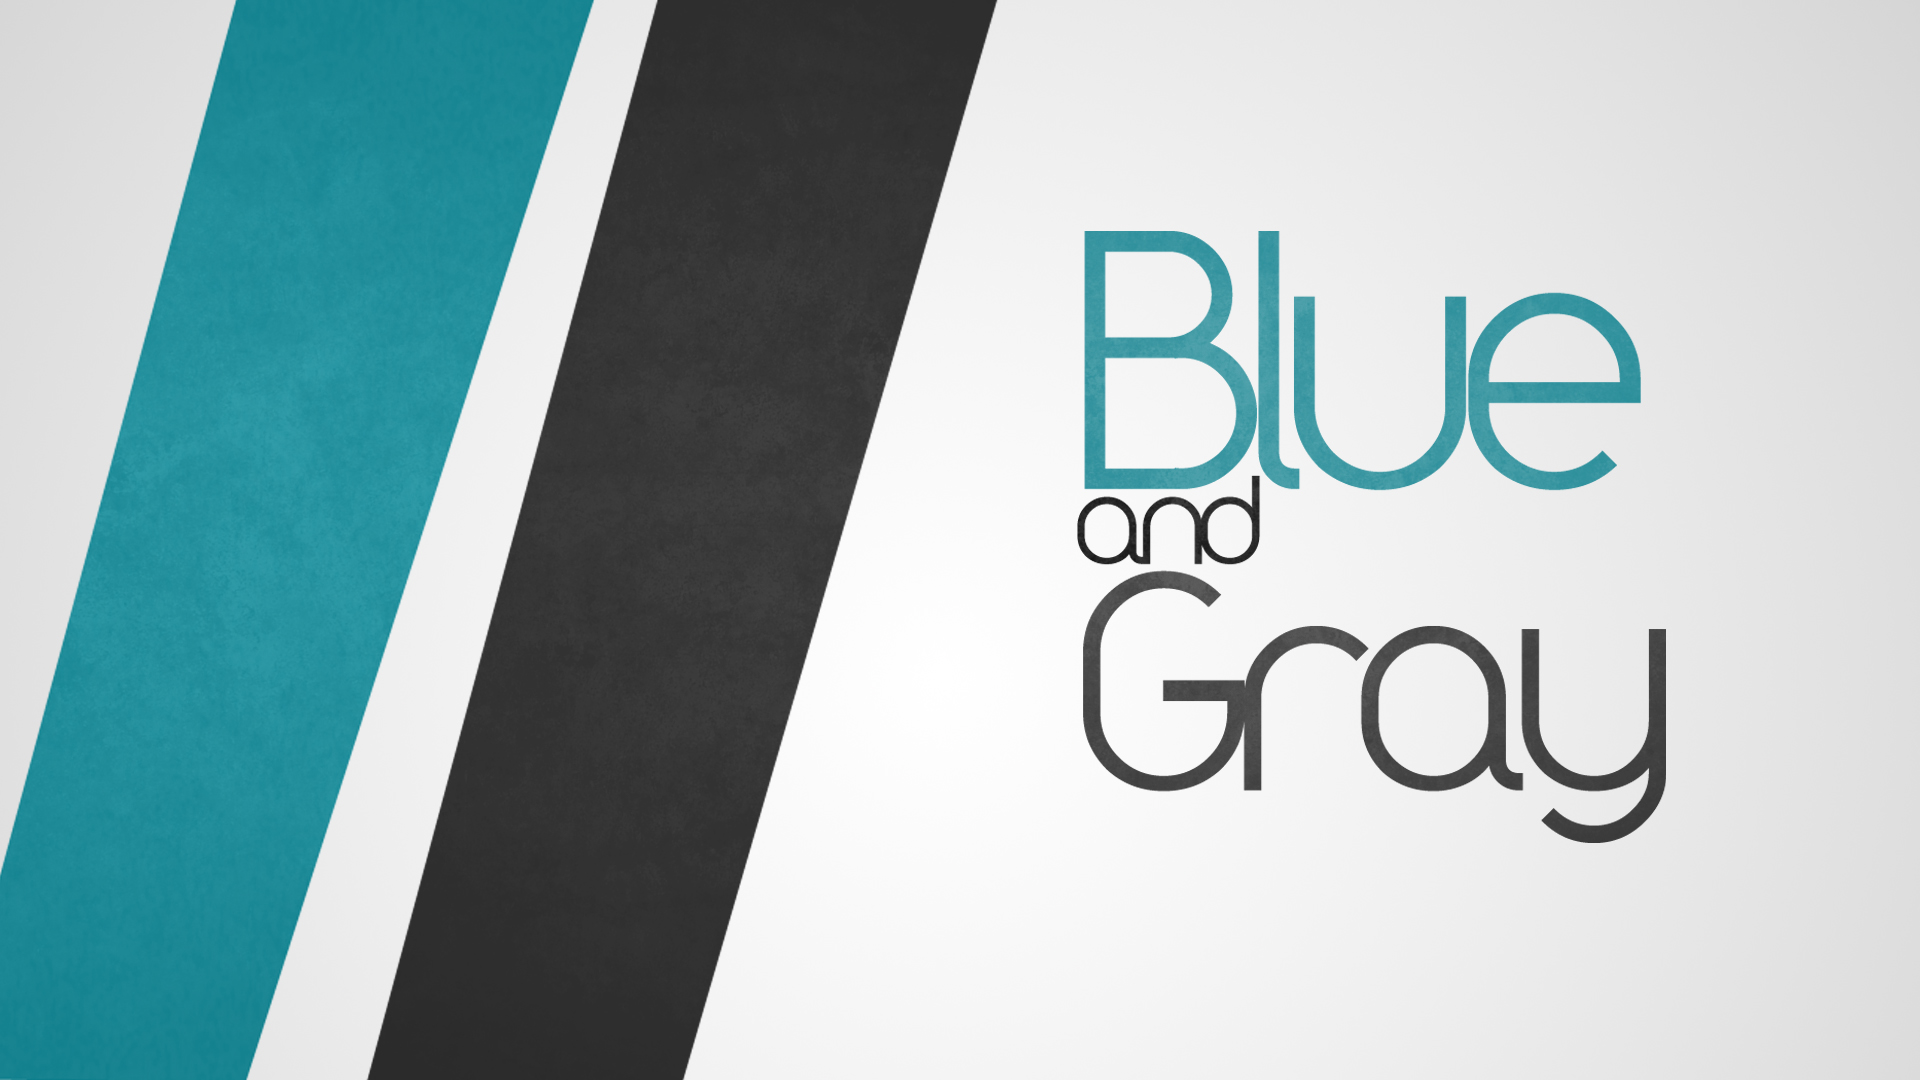 Wallpaper  Blue and Gray by AlreadyPwNDGFX on DeviantArt